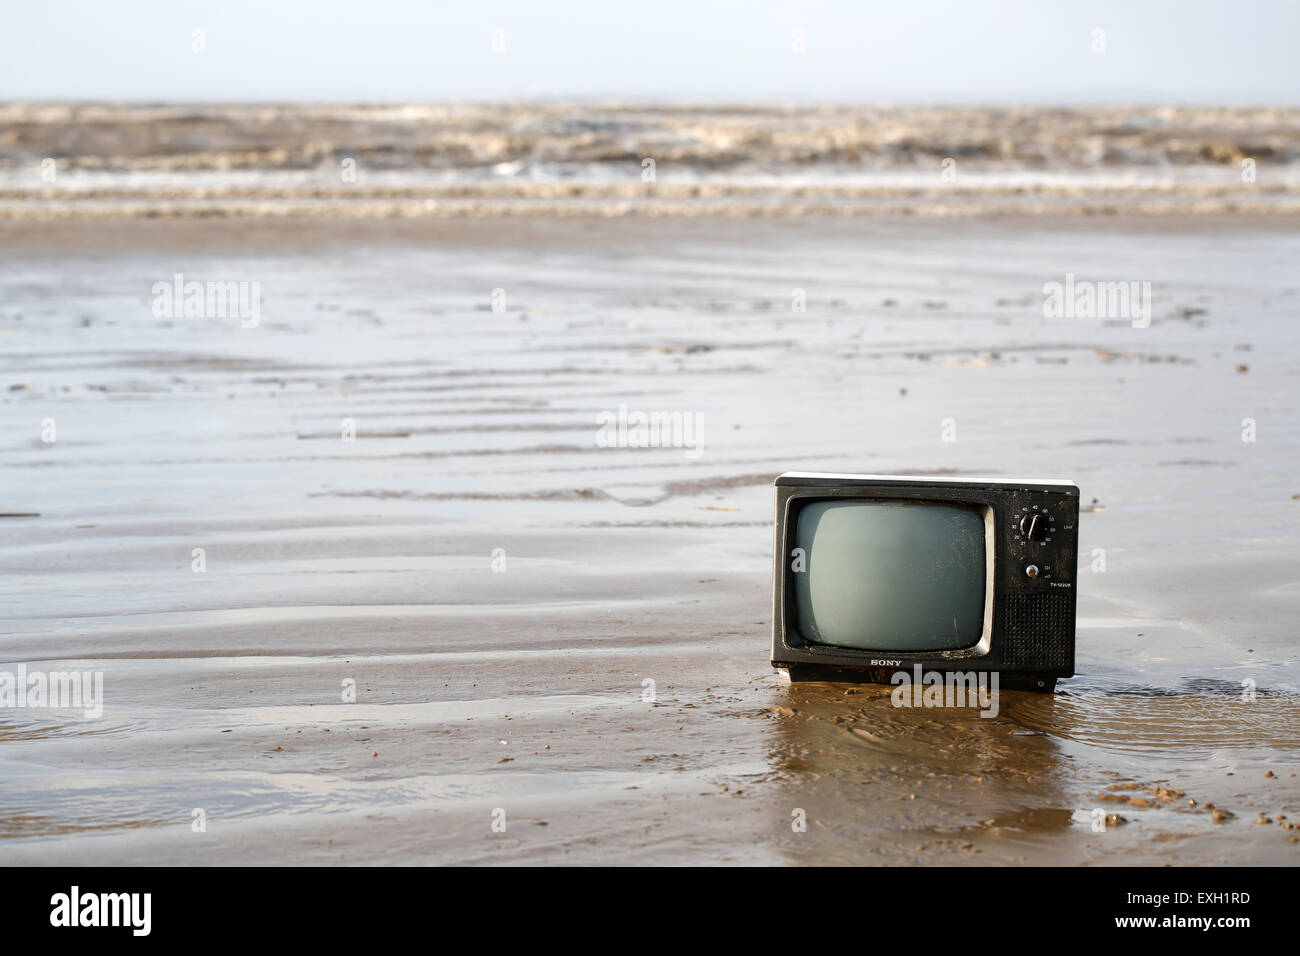 An old TV, washed up out of the sea onto an English sandy shoreline. Environmentally damaging to the beach at weston - Stock Image